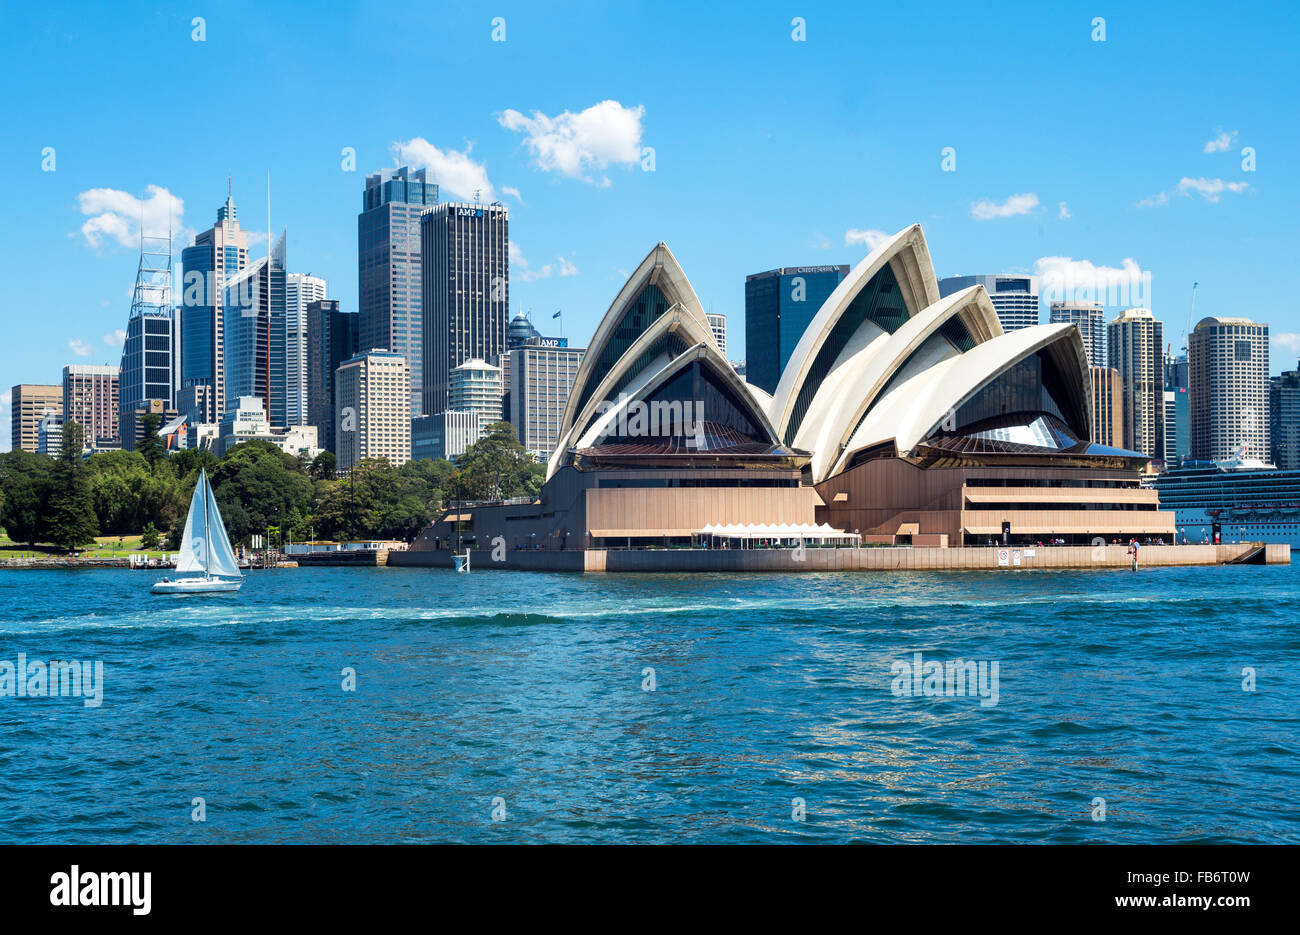 Australia, Sydney, the city center with the Opera House seen from the bay - Stock Image